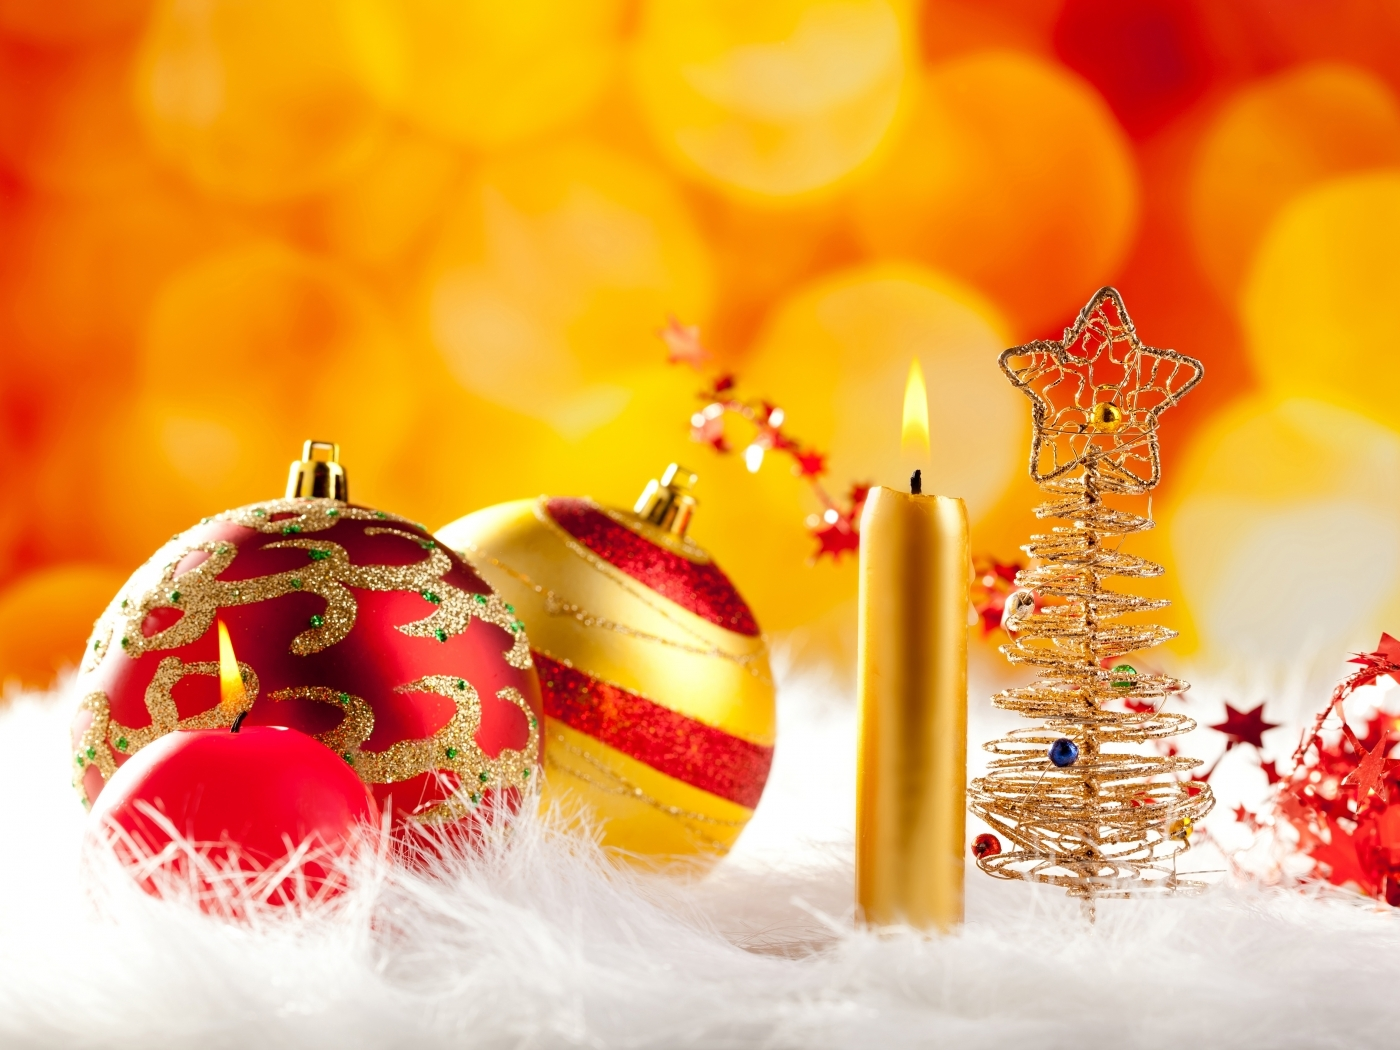 28282 download wallpaper Holidays, New Year, Christmas, Xmas, Candles screensavers and pictures for free